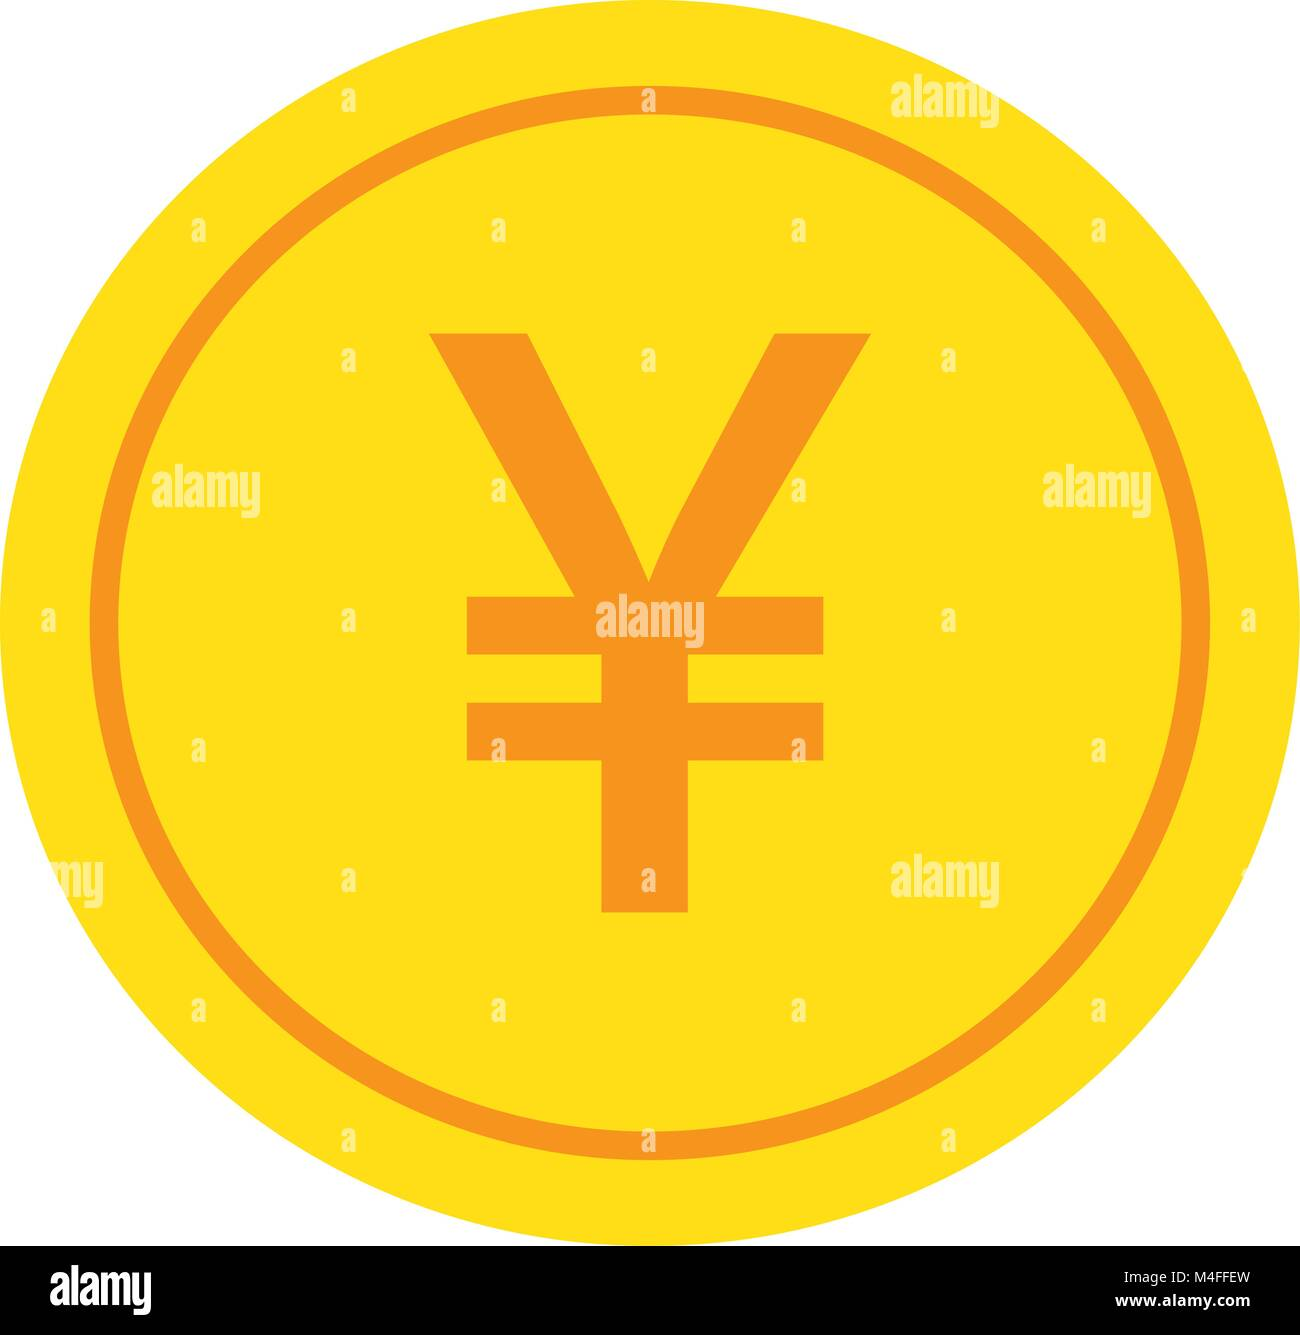 Yen yuan or renminbi currency icon or logo vector over a coin stock yen yuan or renminbi currency icon or logo vector over a coin symbol for japanese or chinese bank banking or japan and china finances buycottarizona Gallery